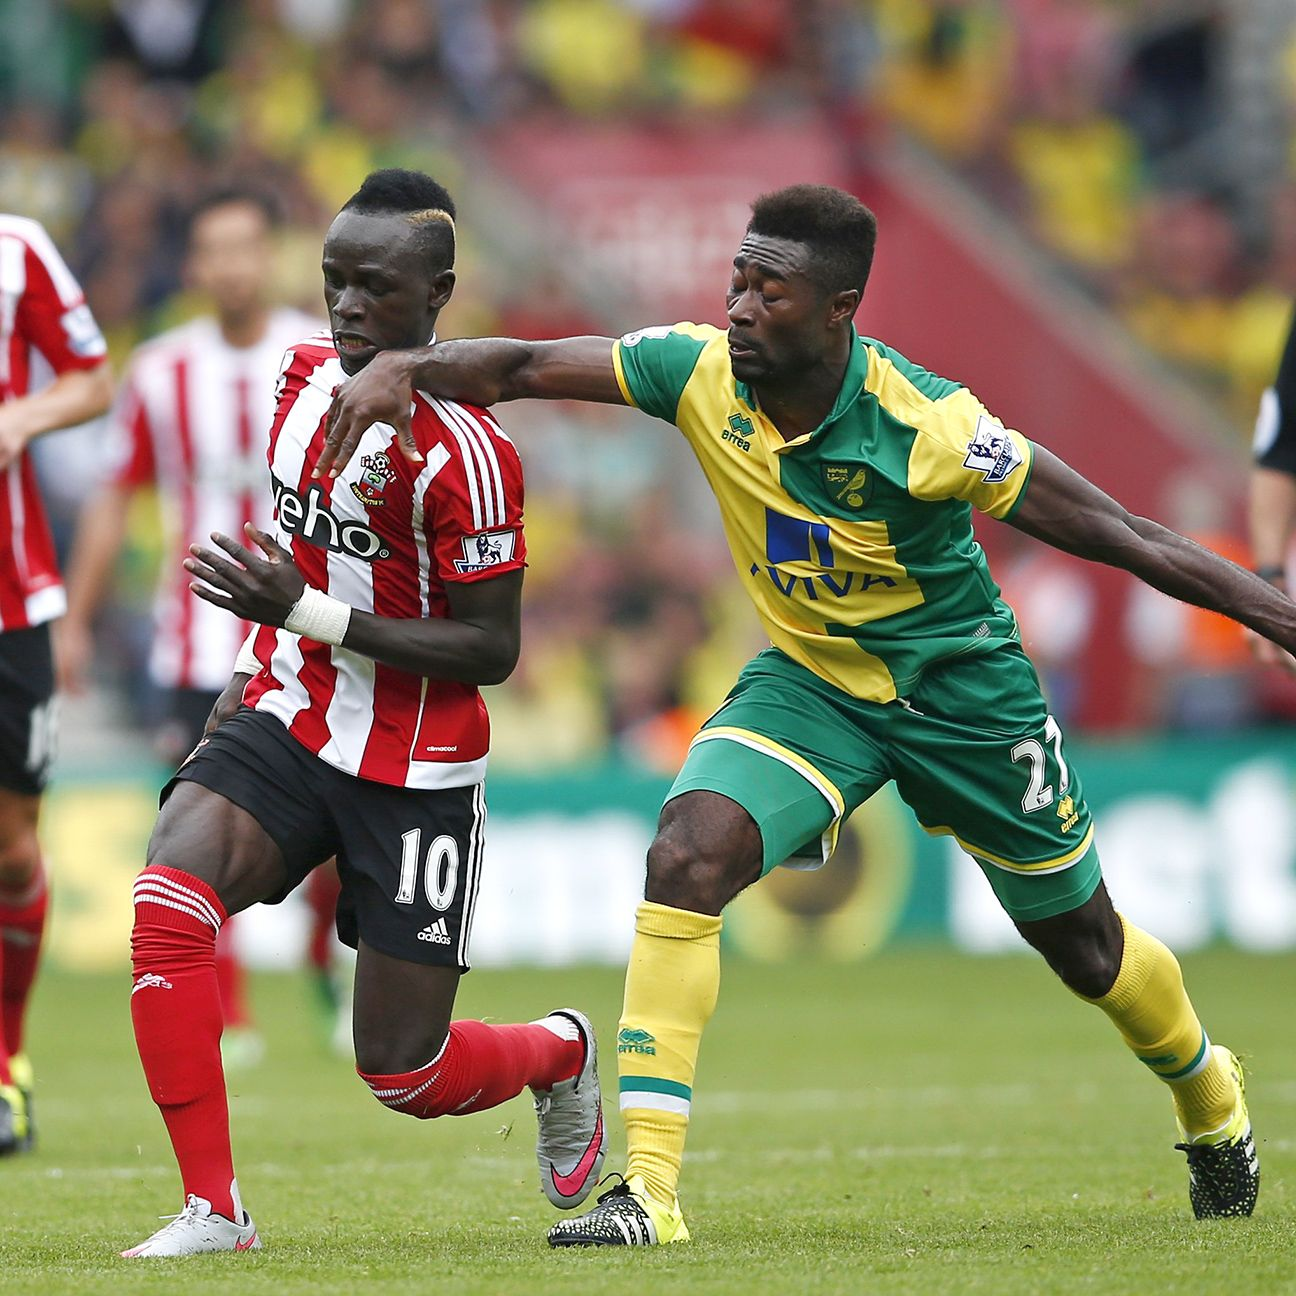 Southampton were a step ahead of Norwich in every phase on Sunday at St Mary's.